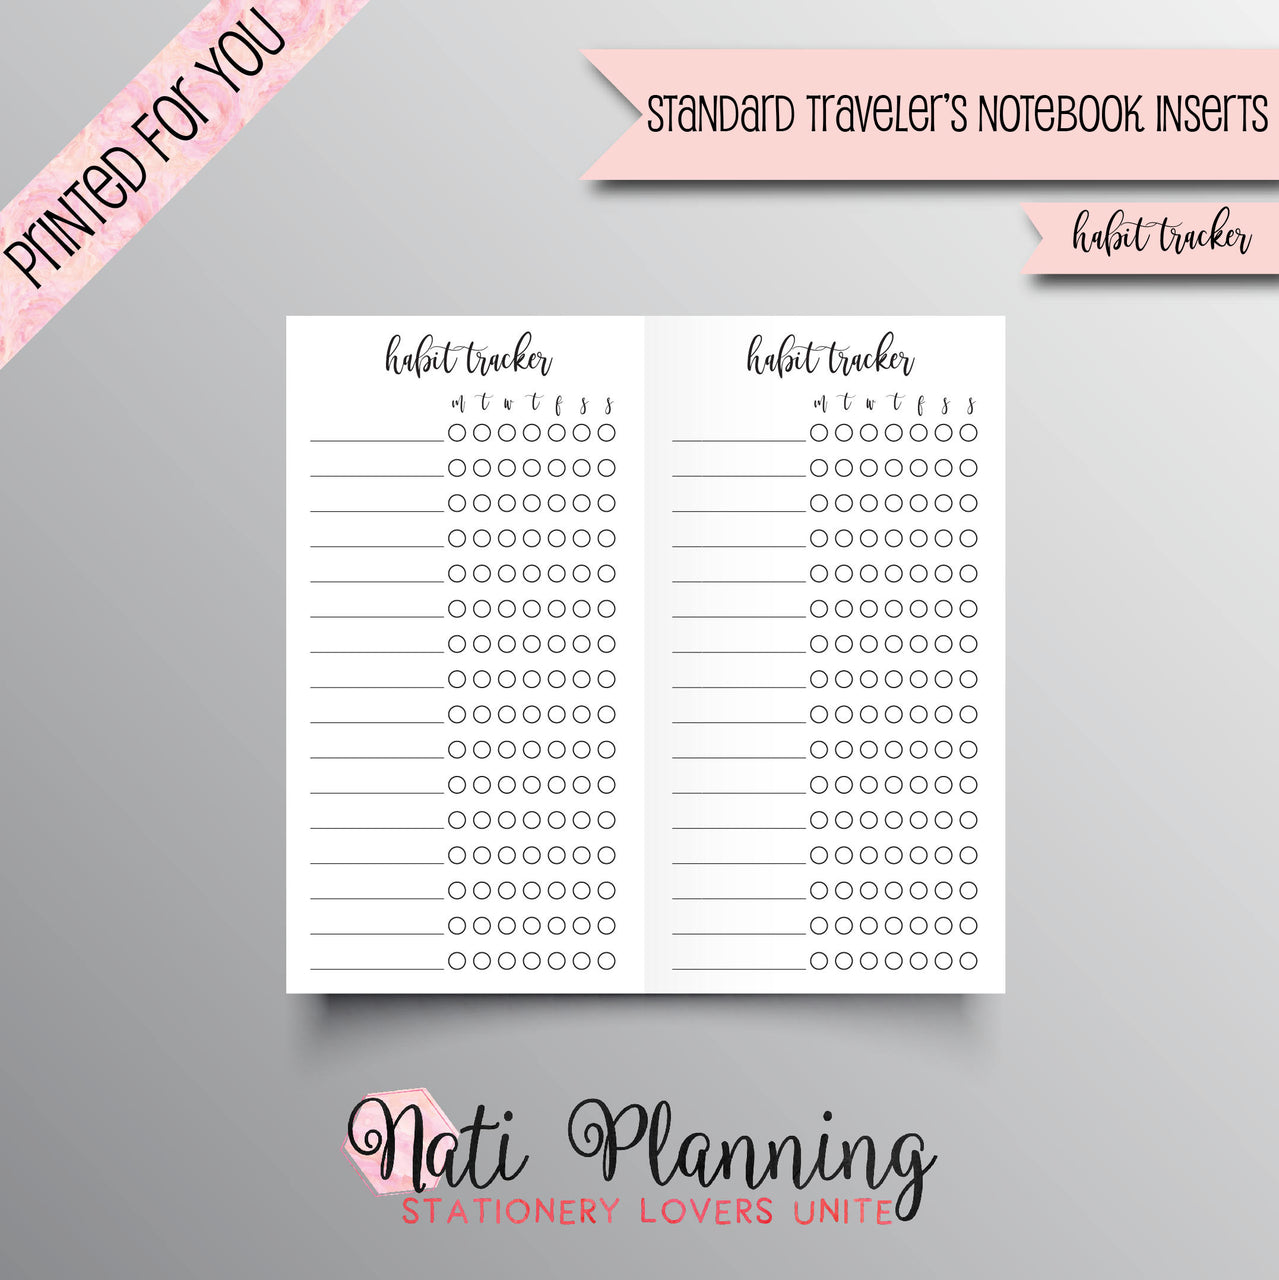 HABIT TRACKER Printed Standard Travelers Notebook Inserts | TN Inserts | Foxy Fix Insert | Chic Sparrow Inserts | Habit Tracker Inserts